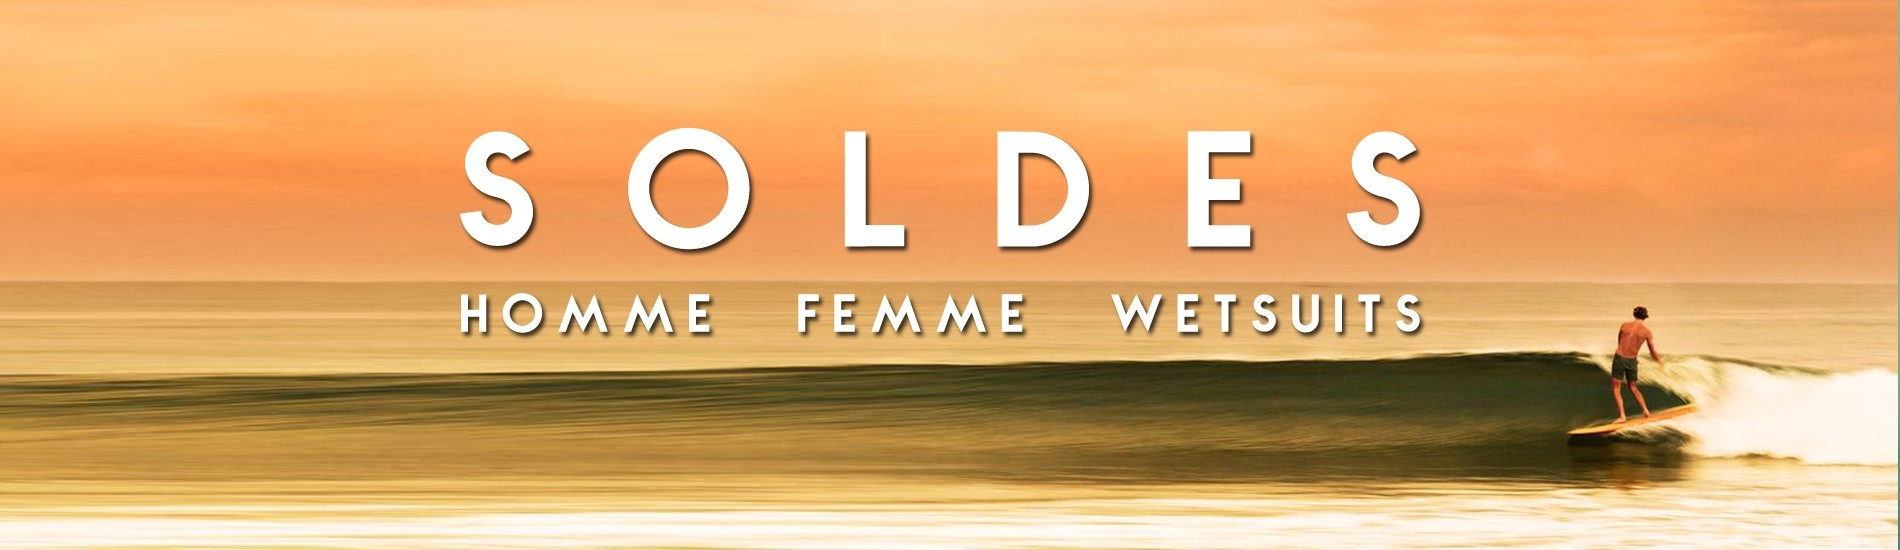 soldes wetsuits